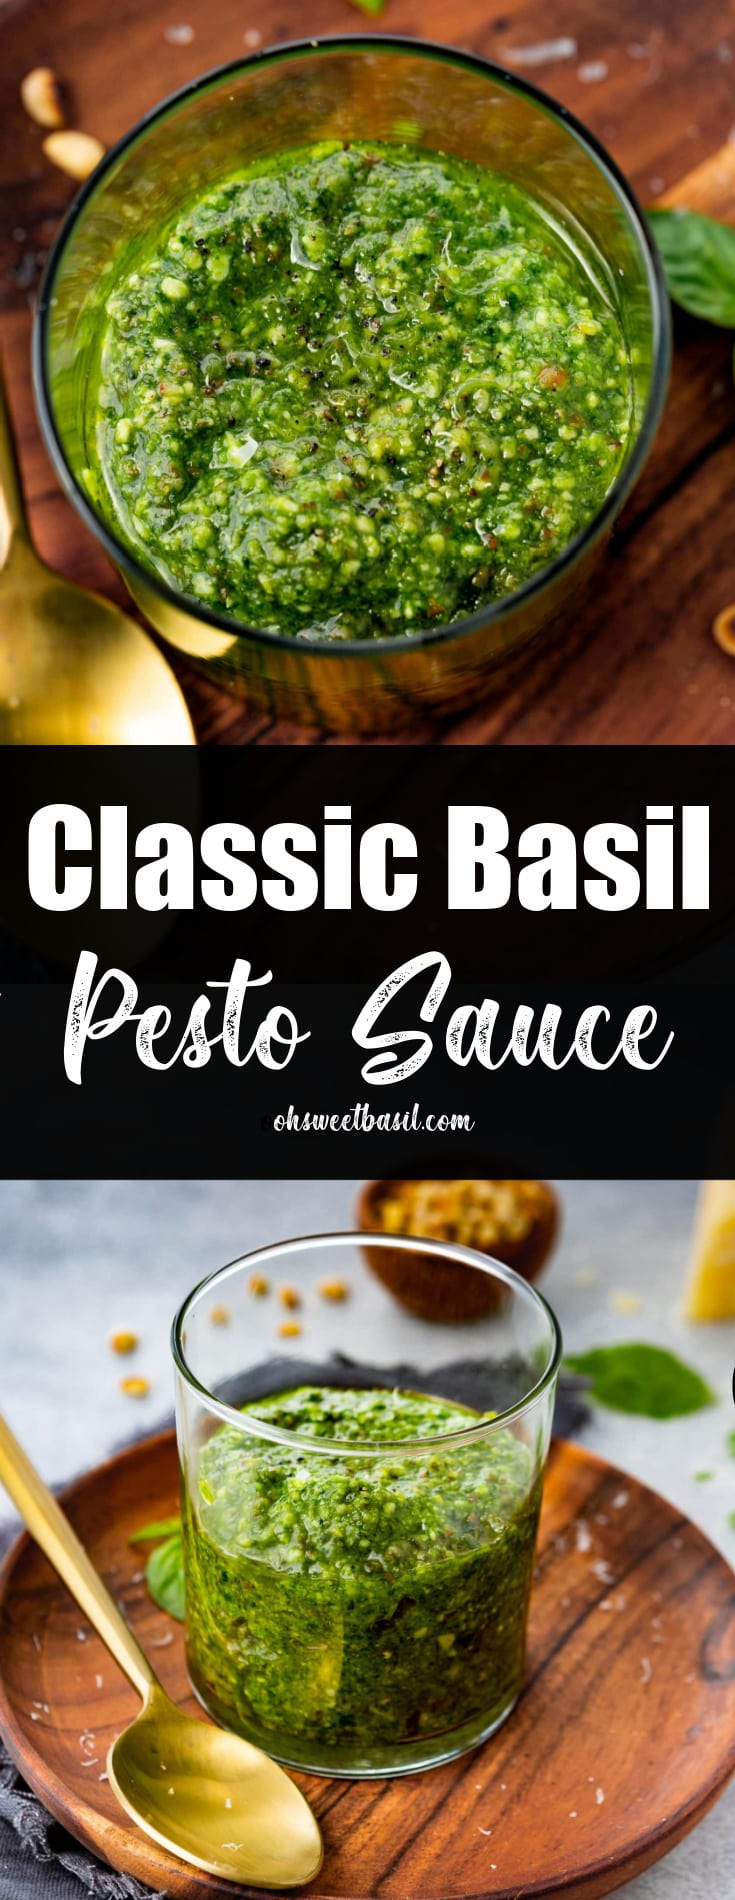 a photo of a jar of homemade pesto sauce on a wooden plate with a gold spoon next to it.